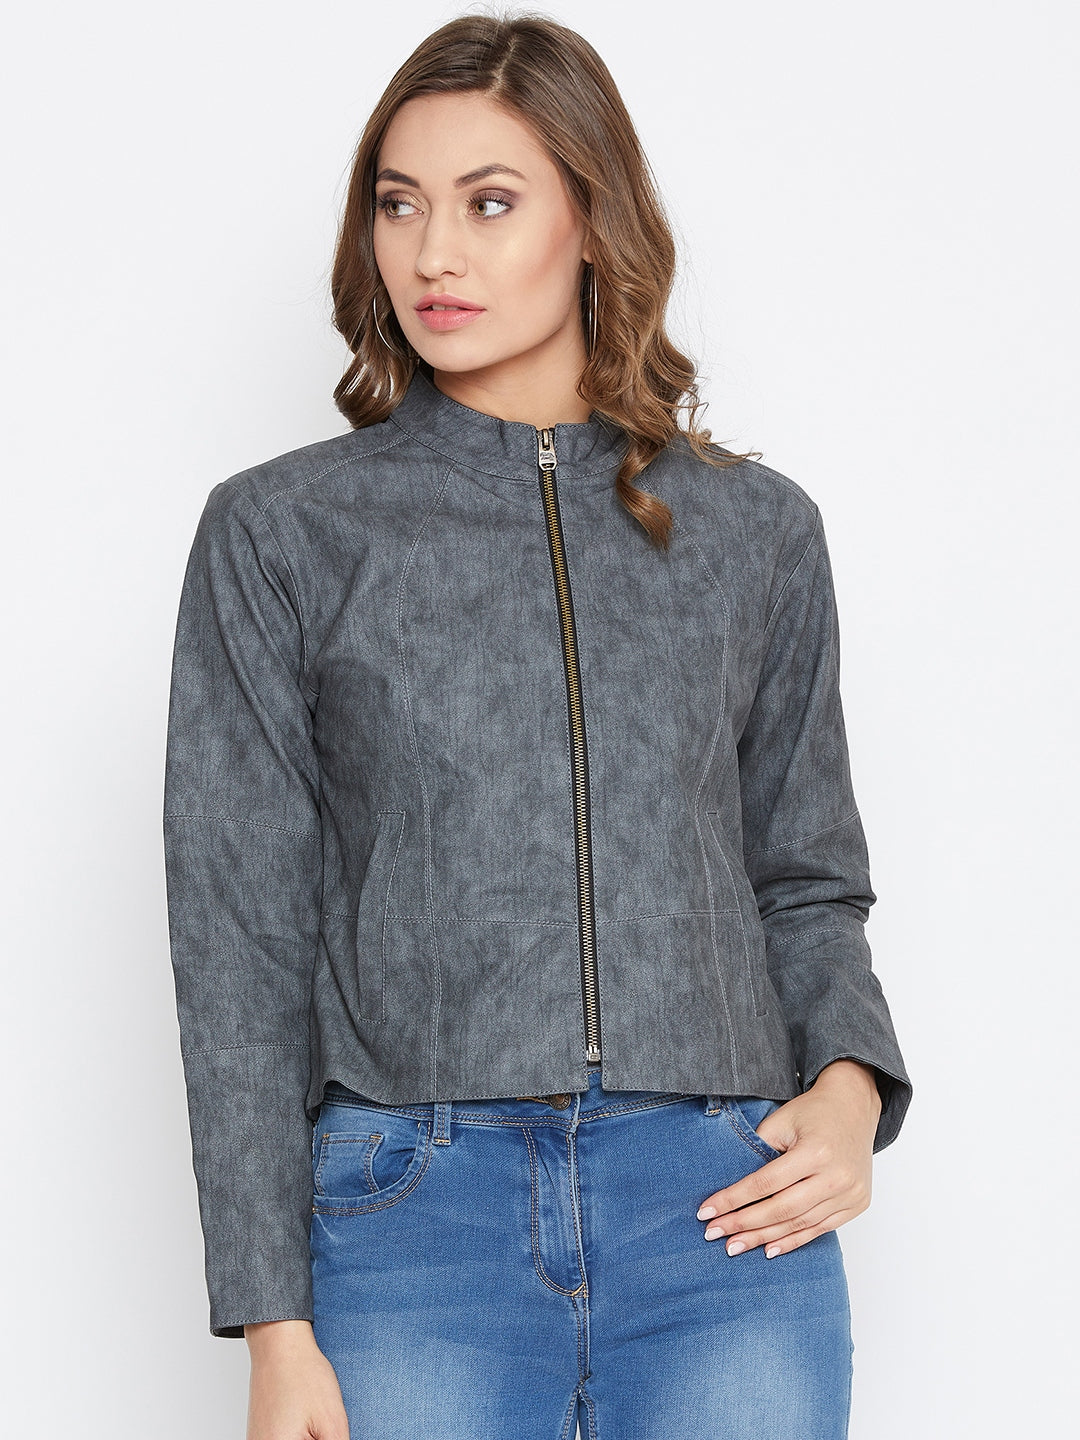 JUMP USA Women Grey Solid Casual Leather Jacket